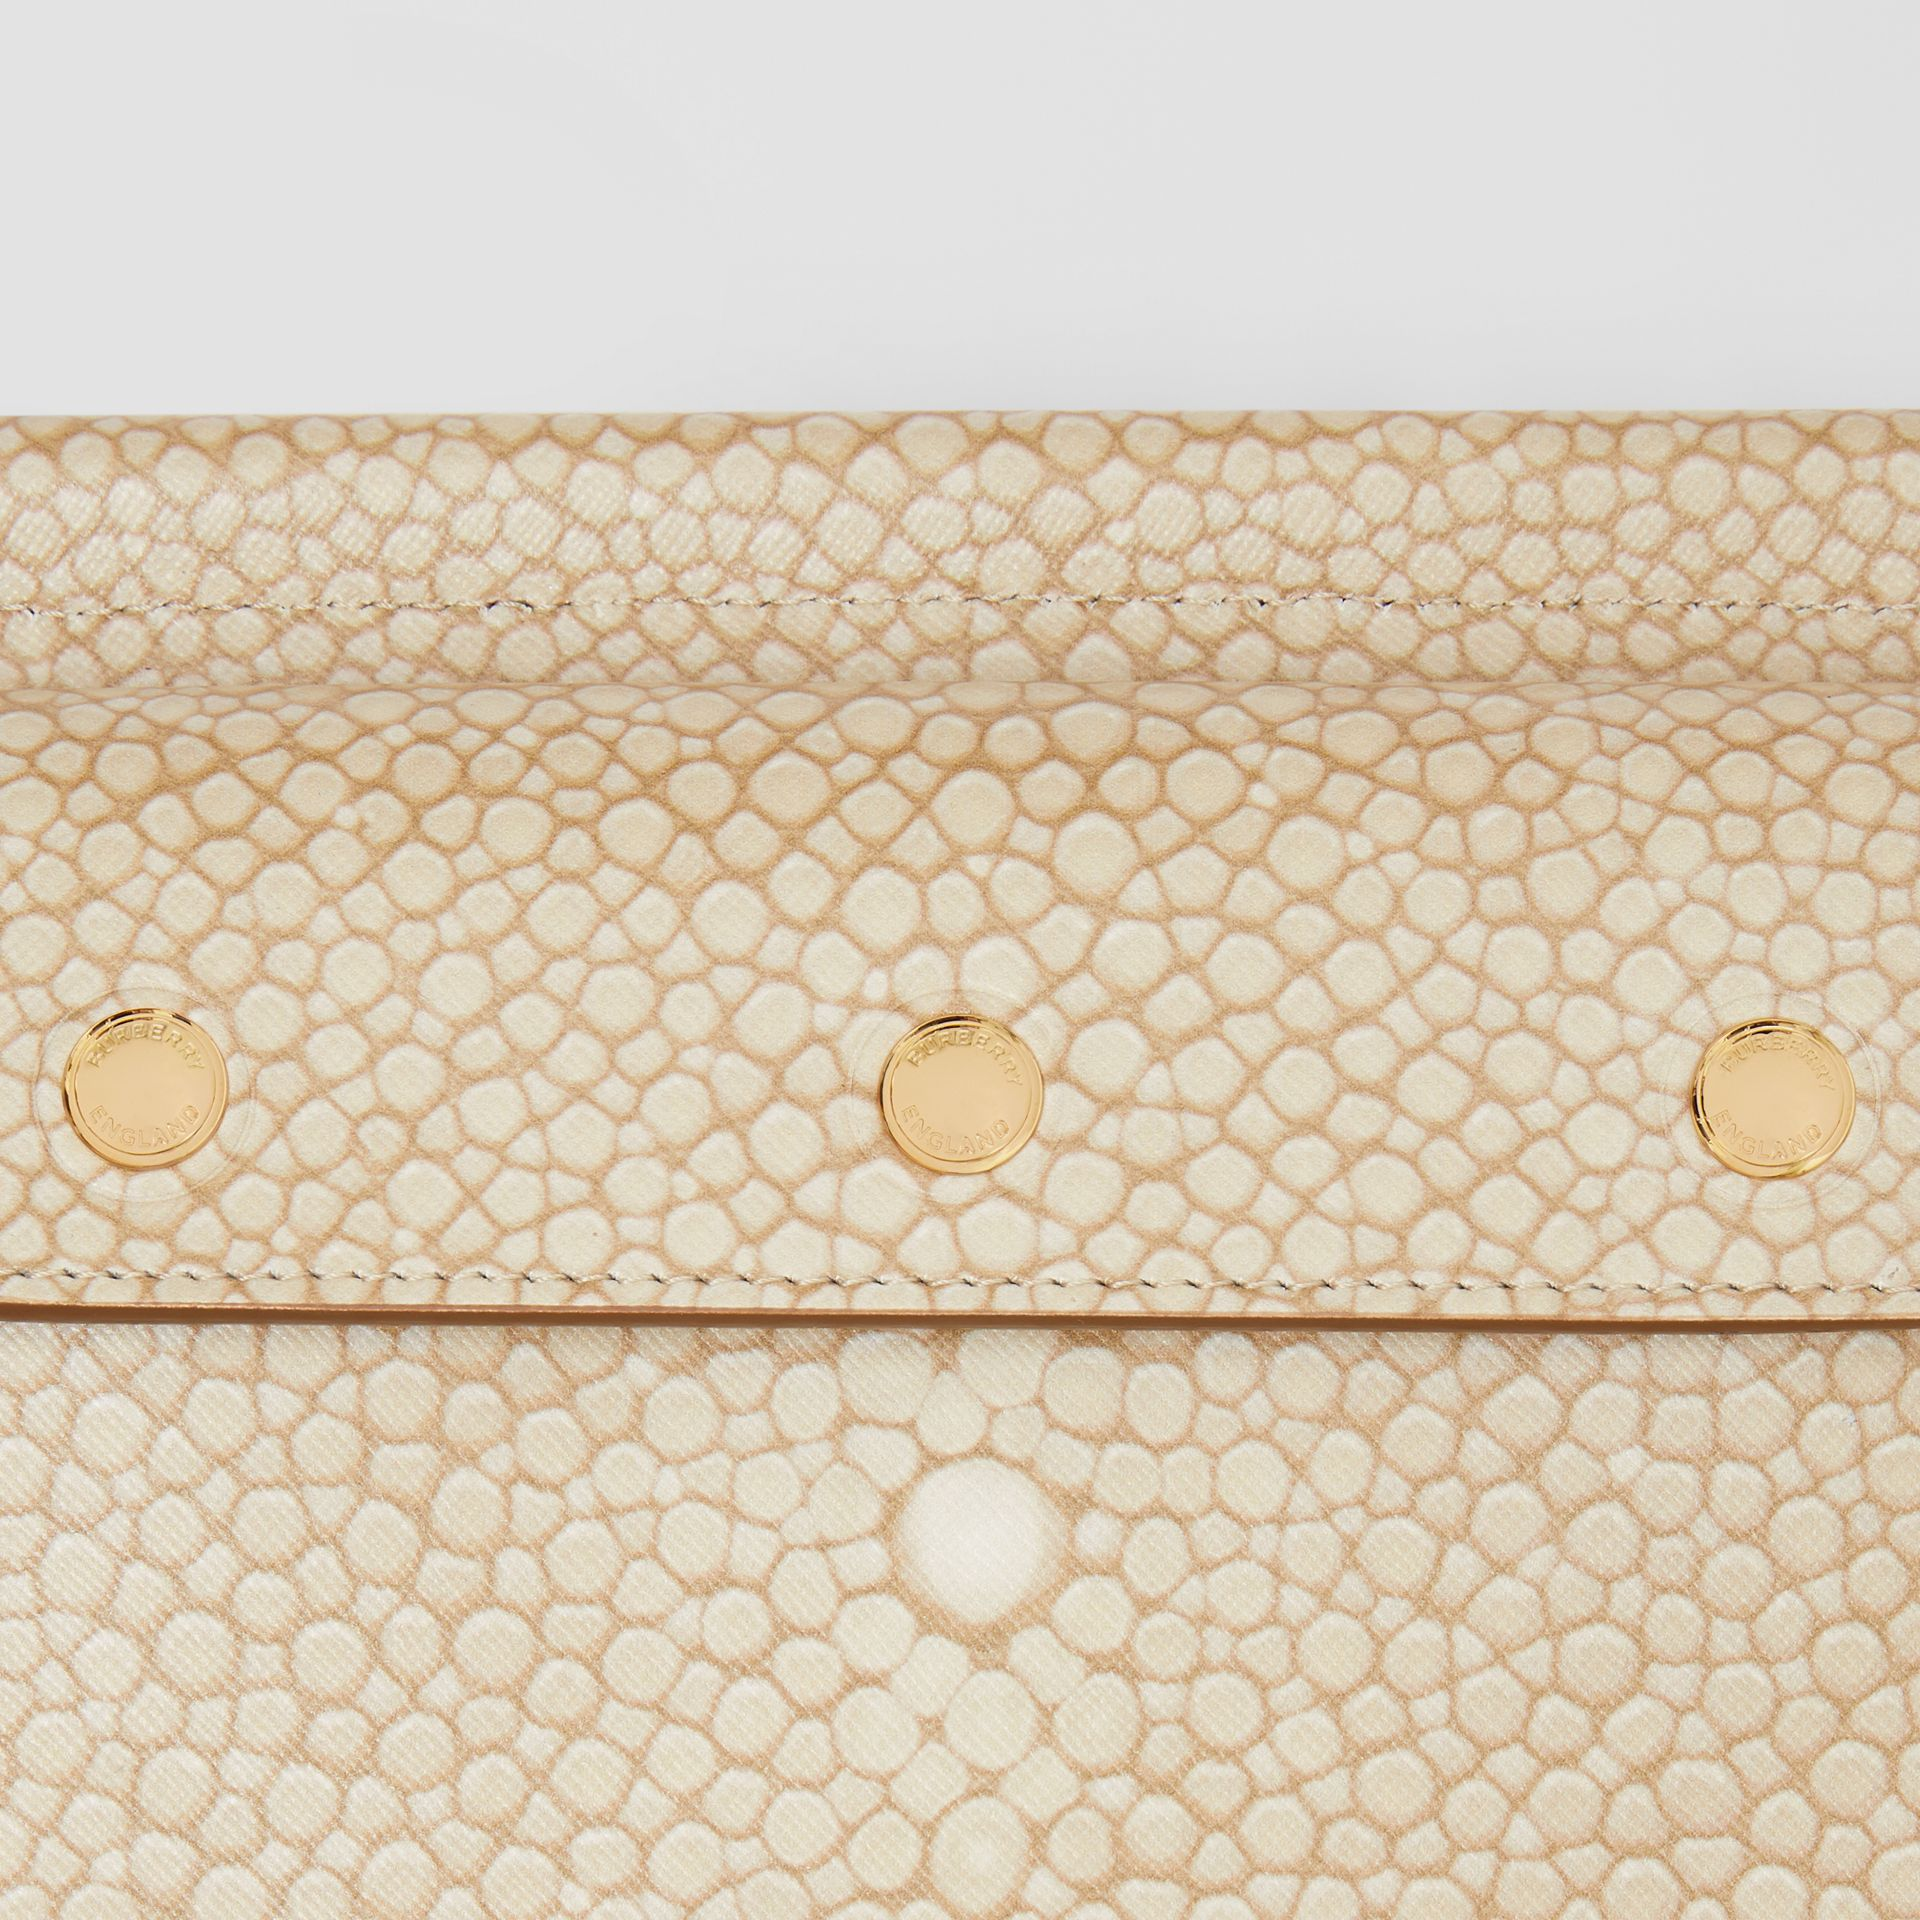 Mini Fish-scale Print Title Bag with Pocket Detail in Light Sand - Women | Burberry - gallery image 1